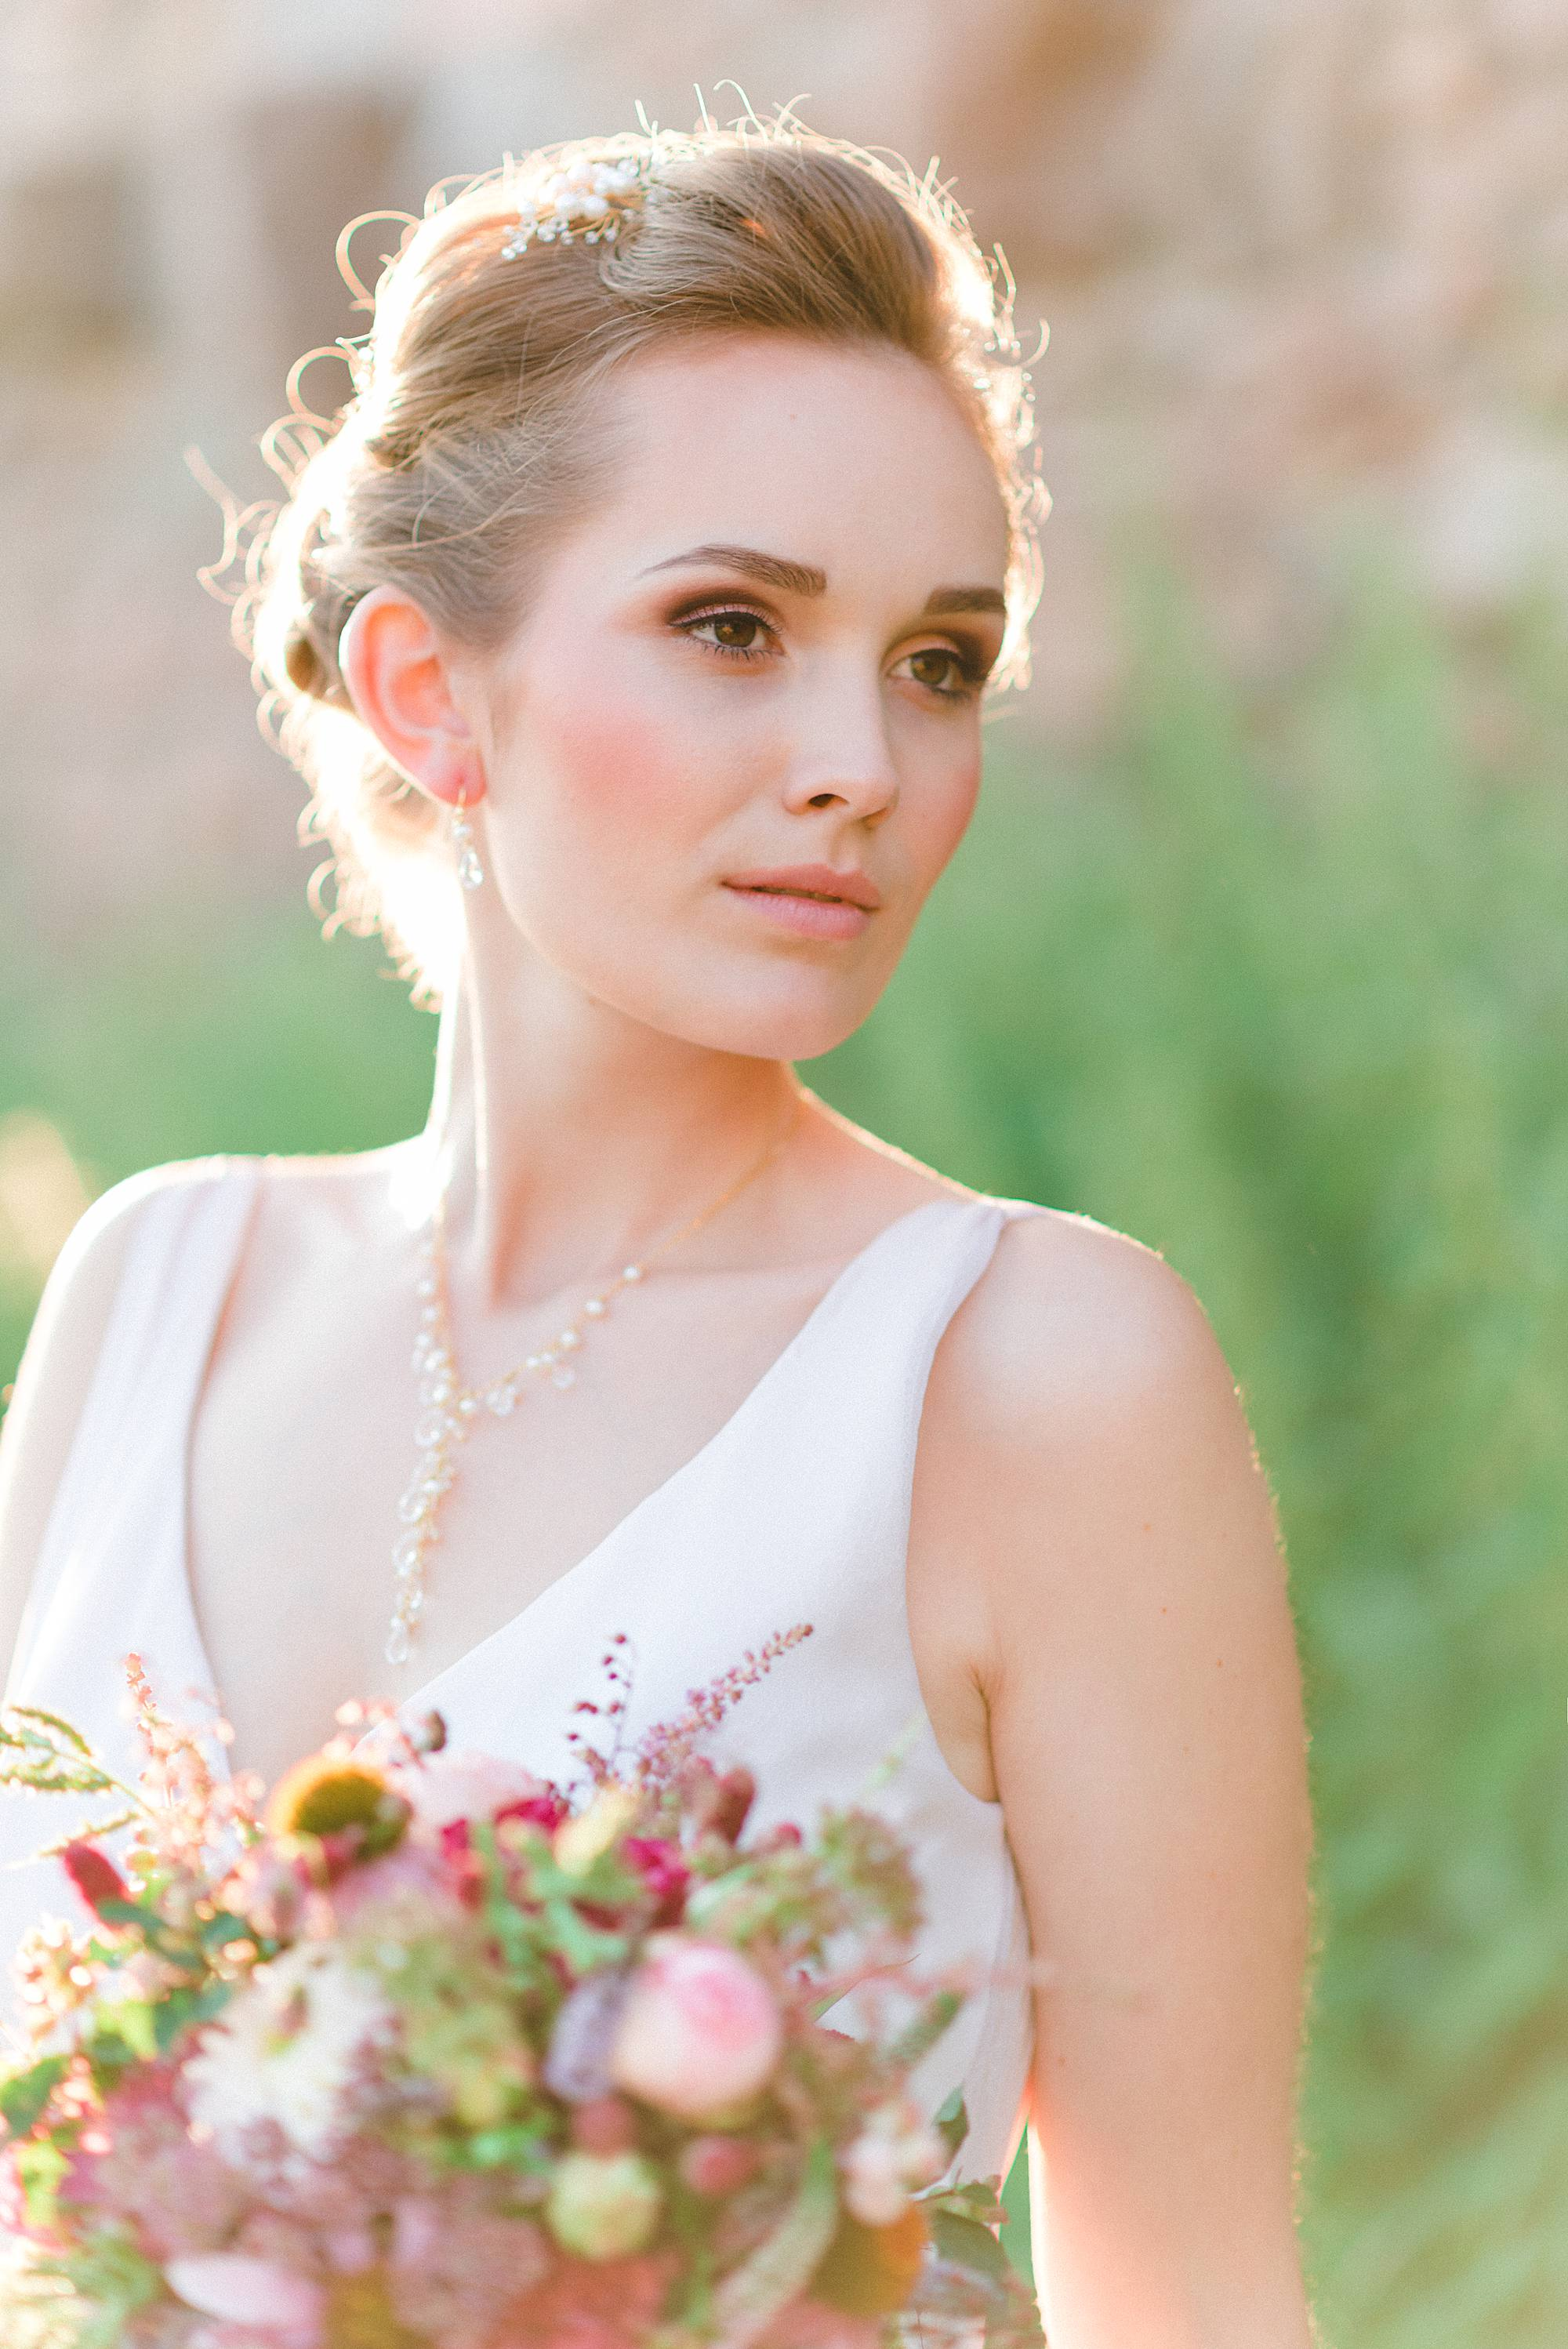 Bridal jewellery for an autumn wedding